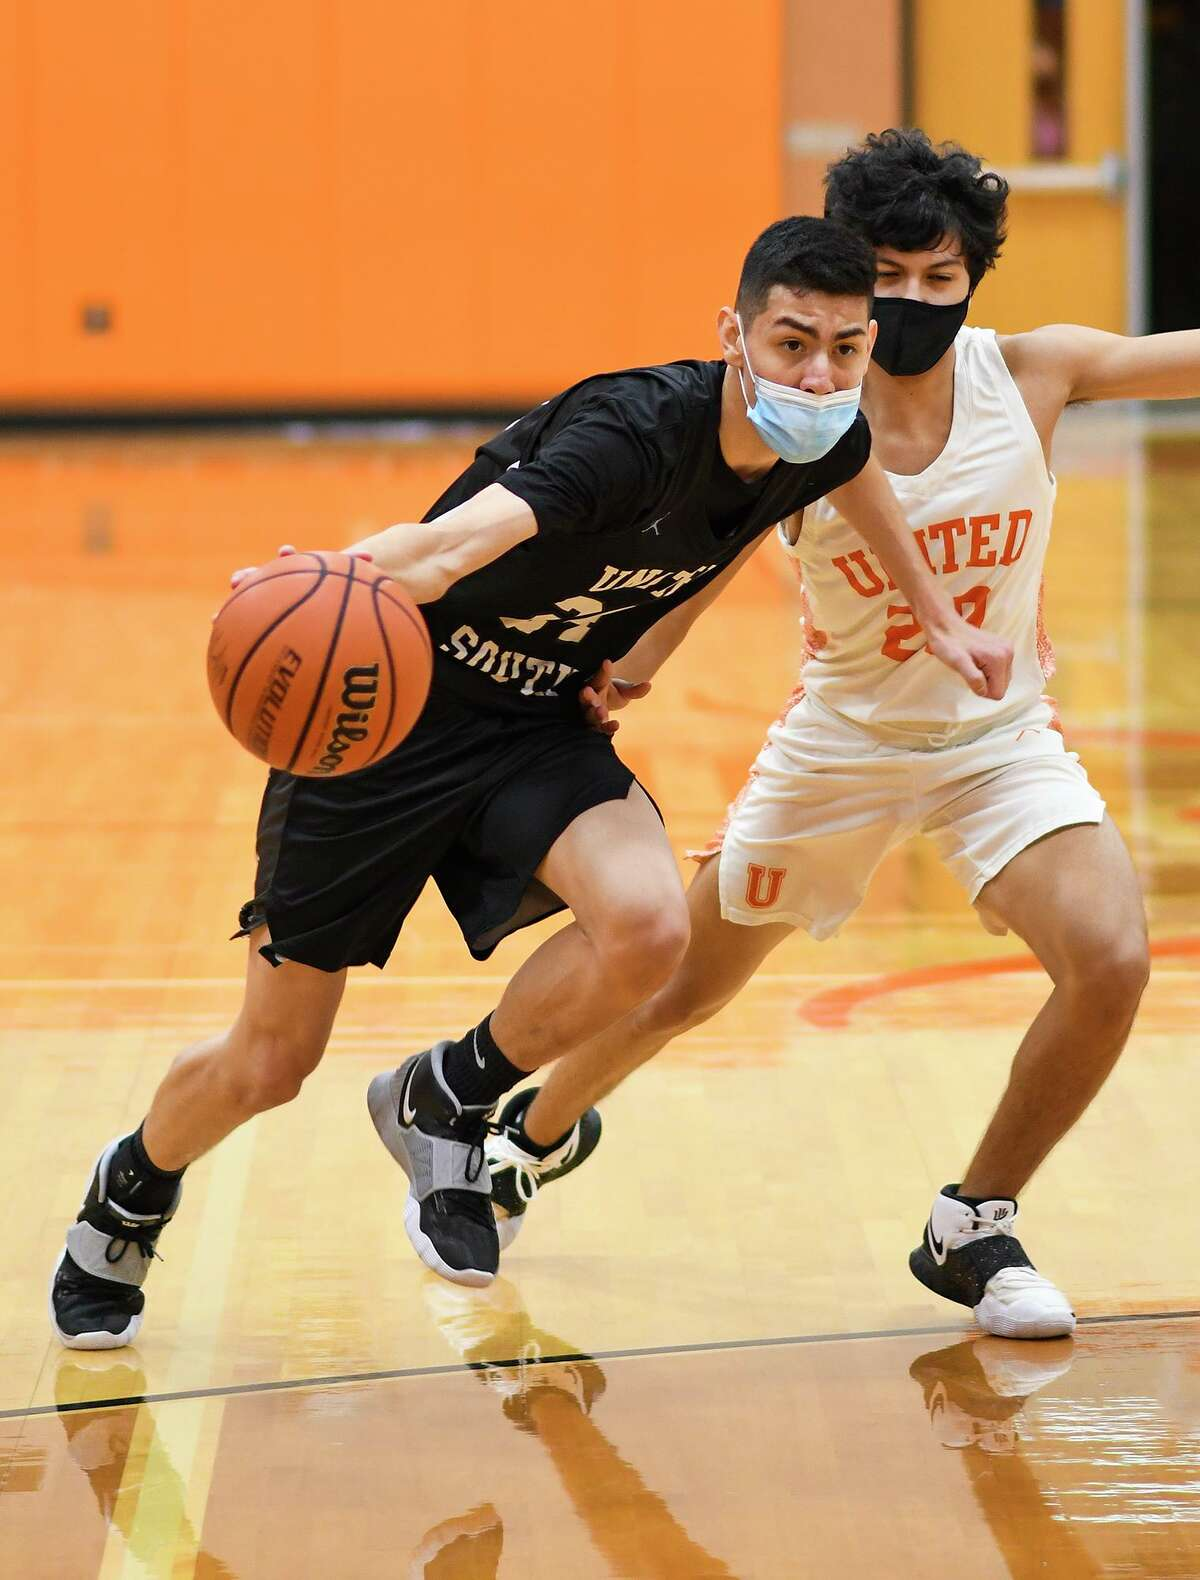 Raul Pedraza scored 19 points as United South defeated United on Friday.